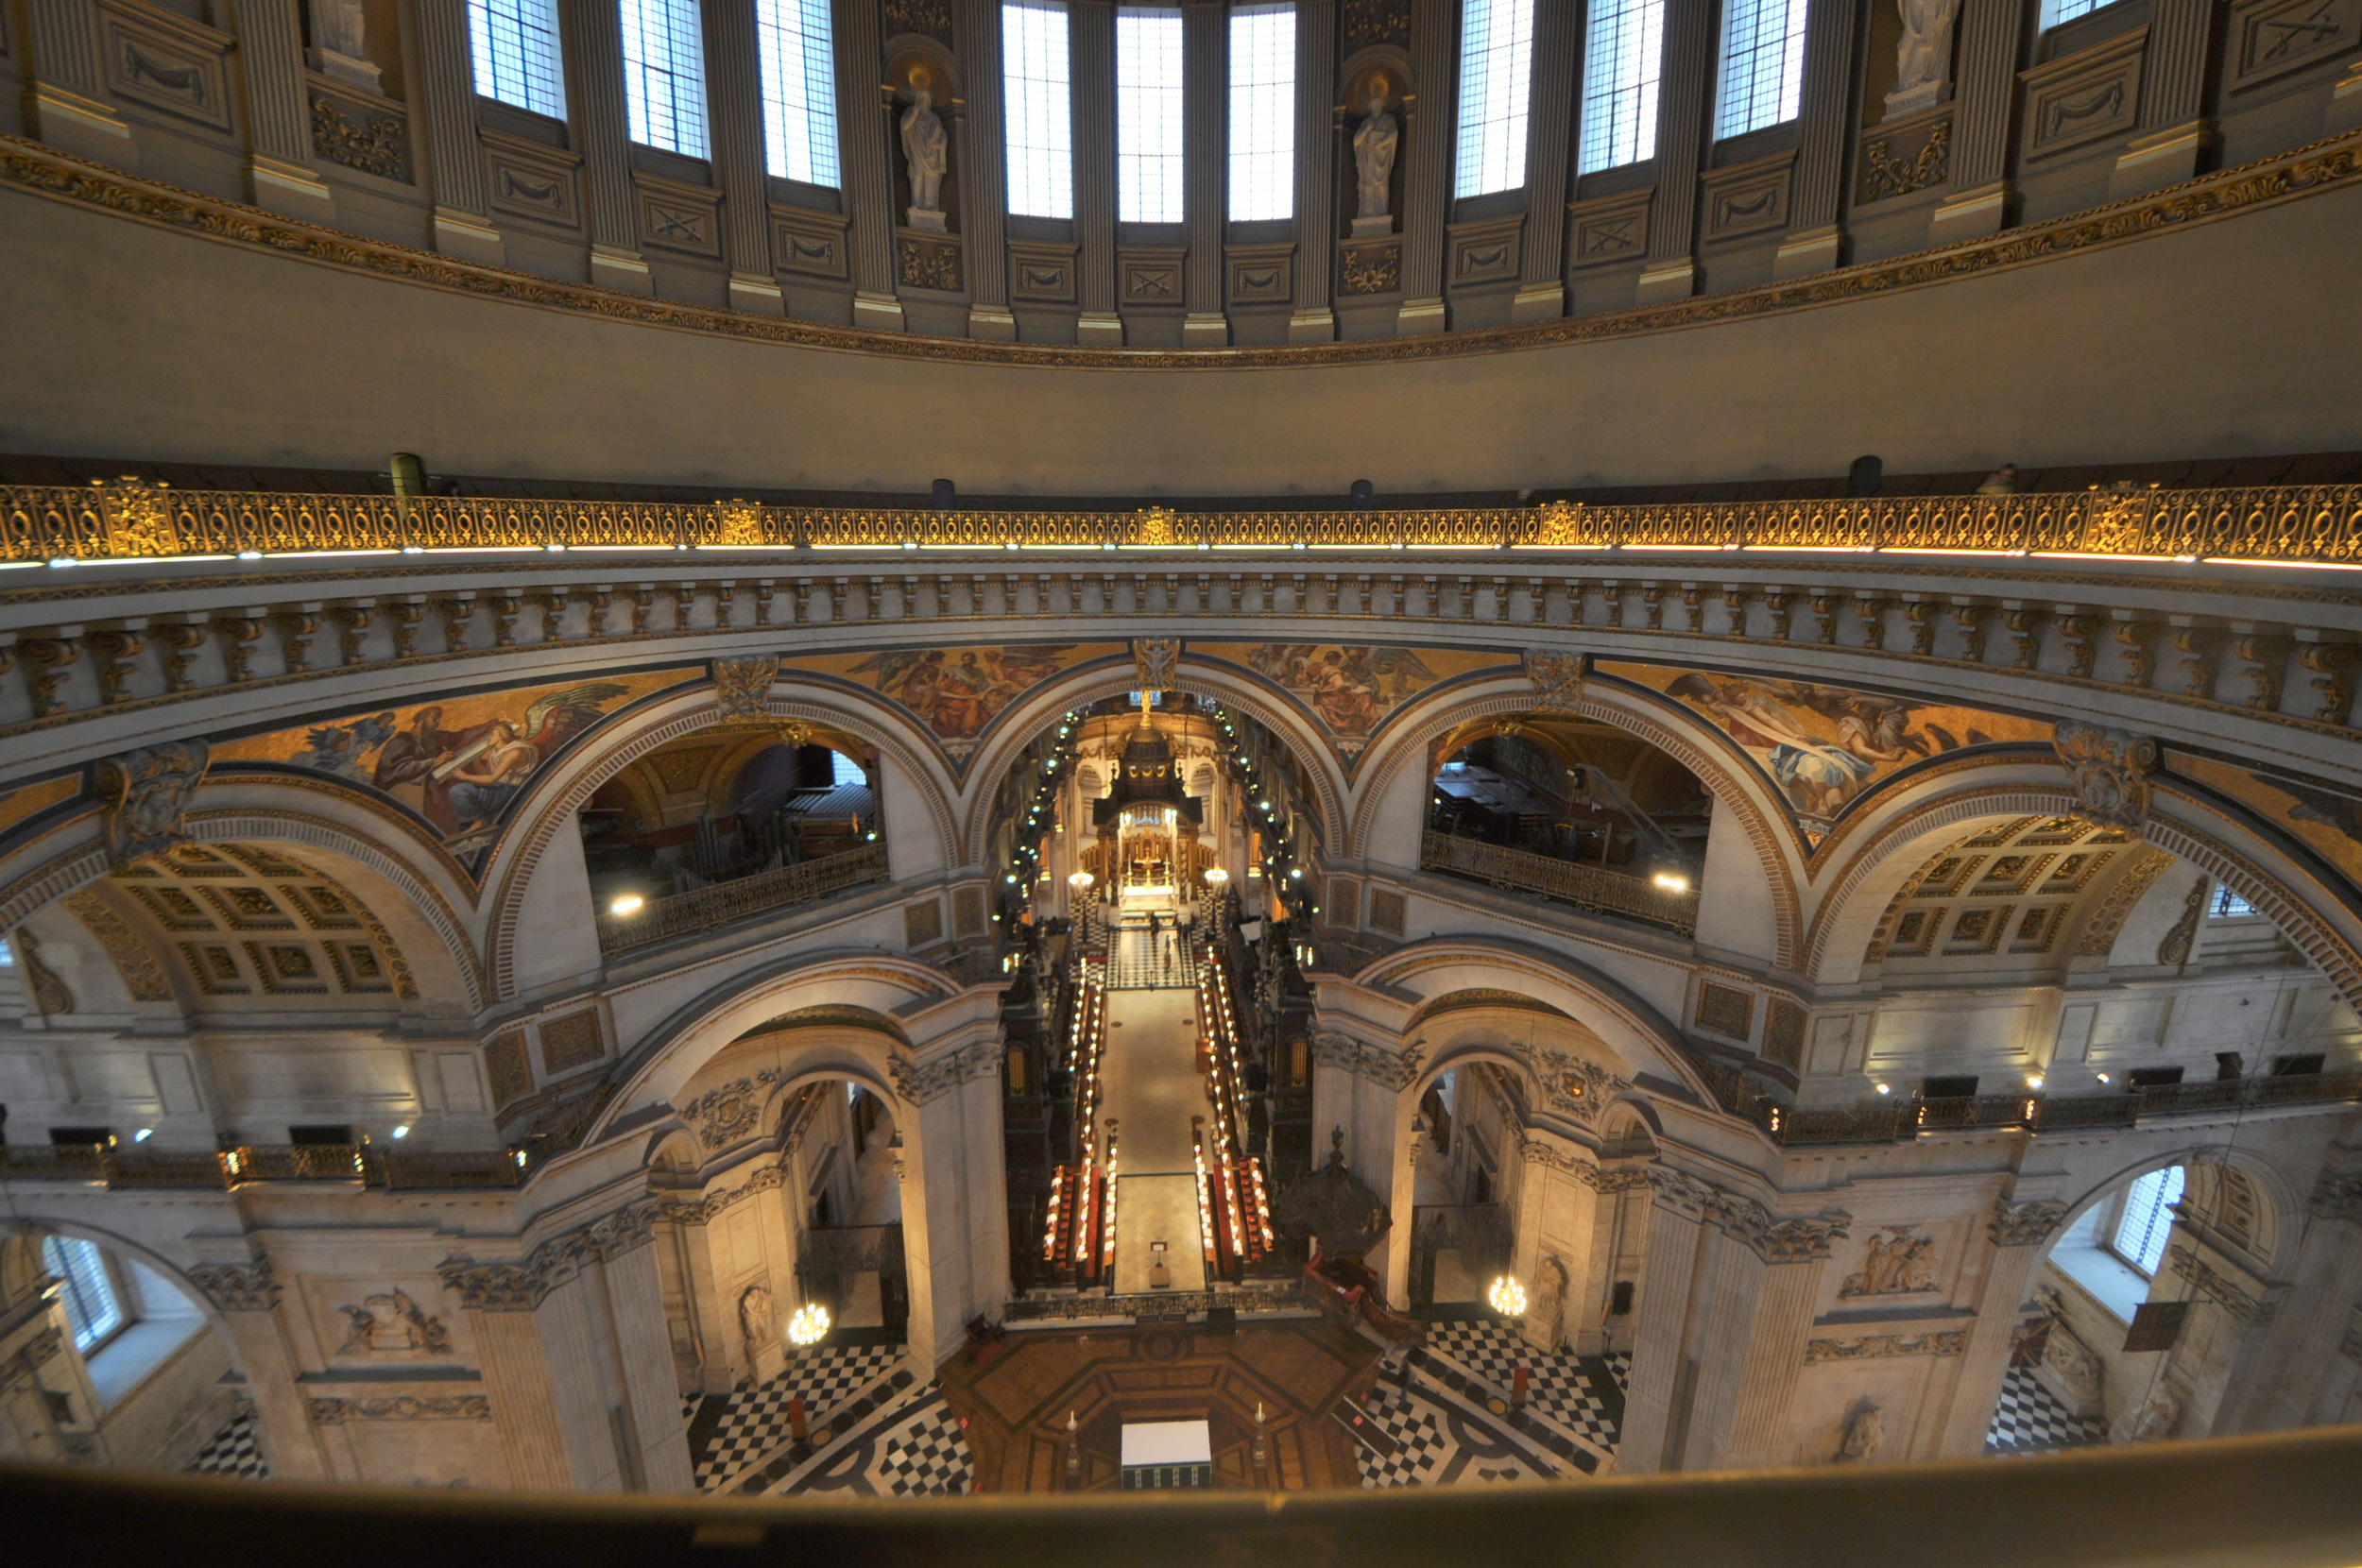 The view from the whispering gallery in St Paul's Cathedral in London. Image by Aiwok